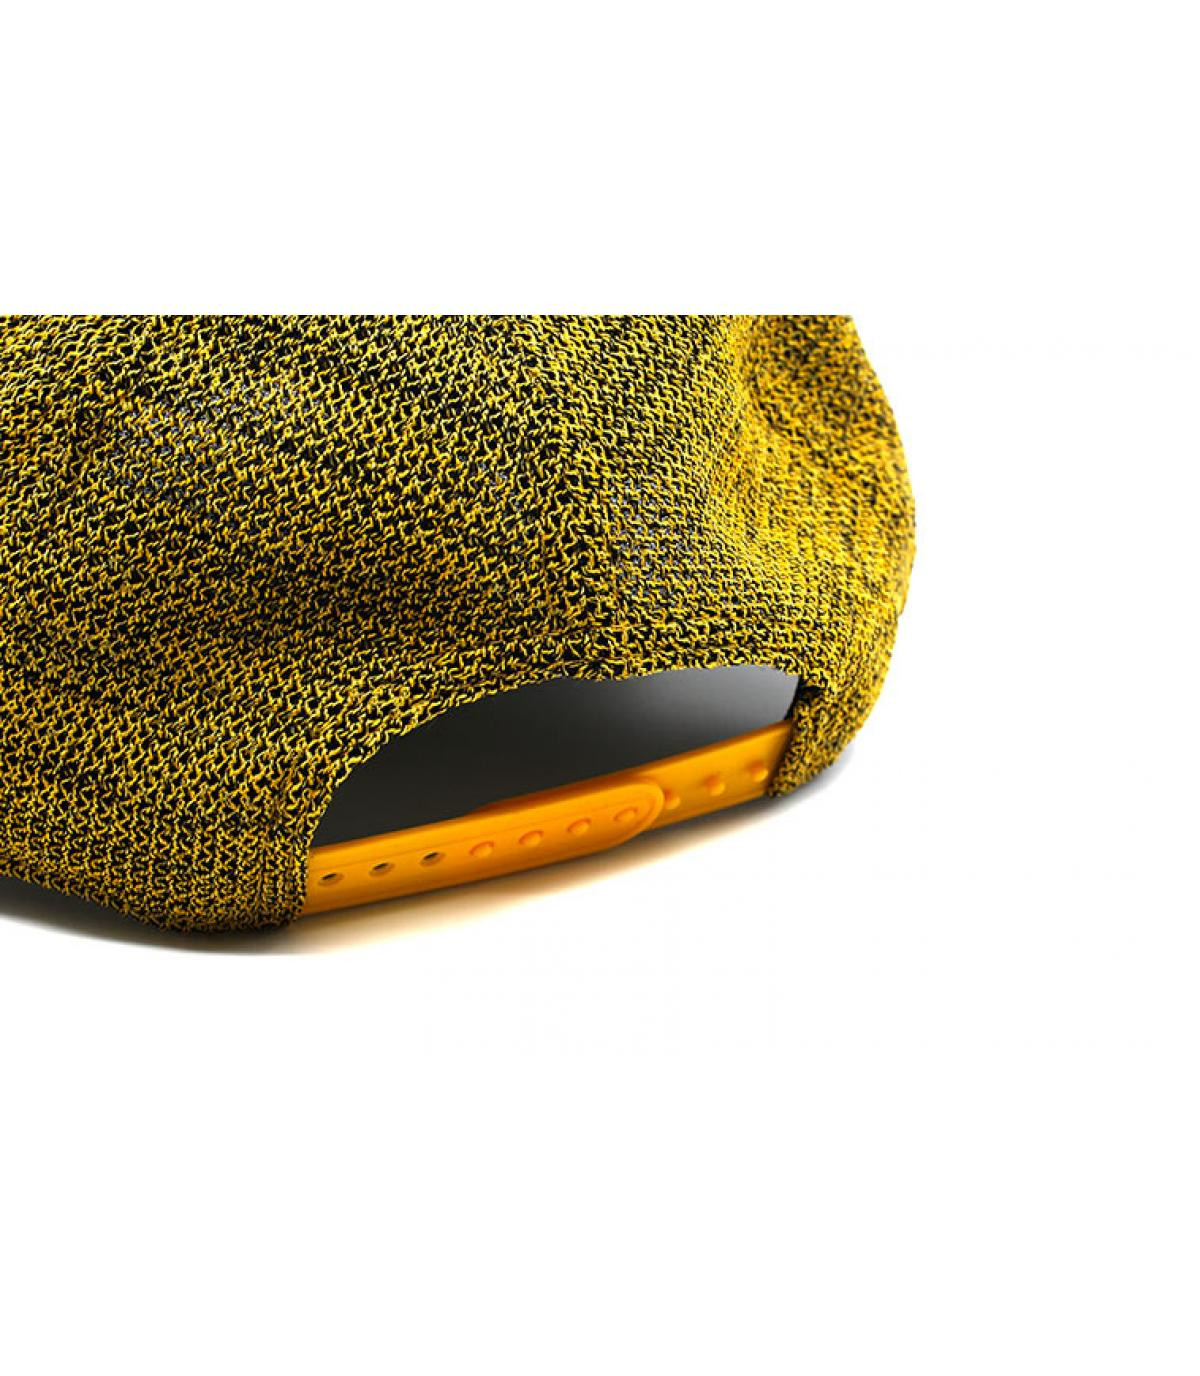 Détails Casquette Engineered Fit A Frame Boston yellow black - image 5